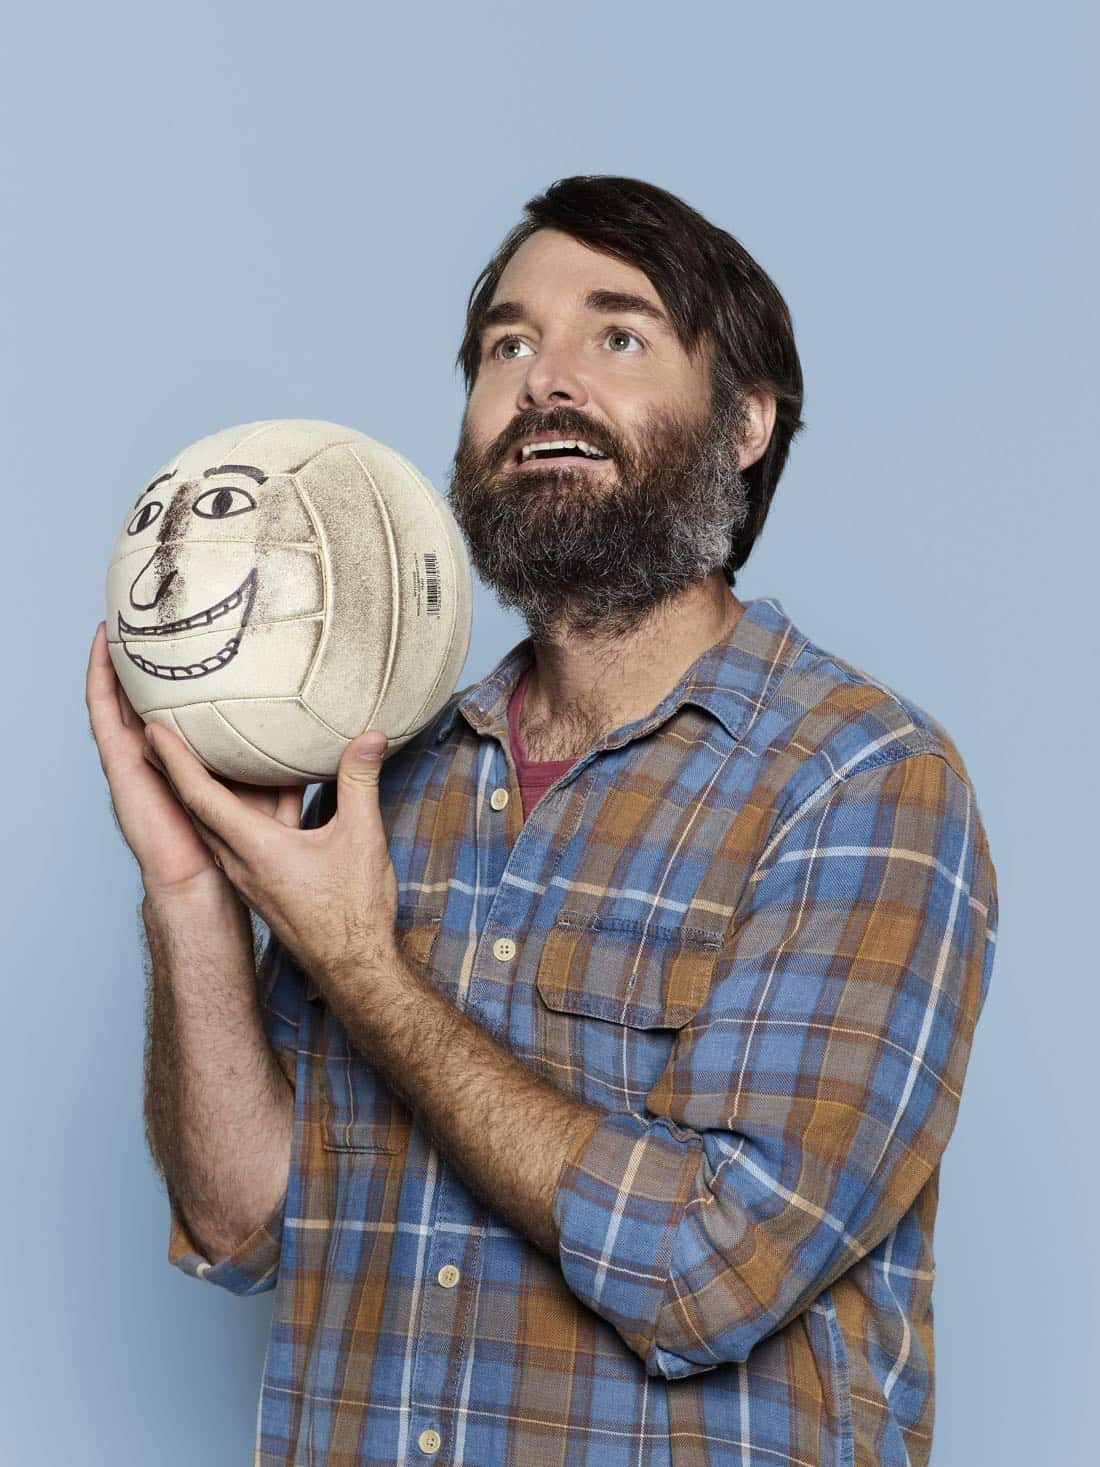 THE LAST MAN ON EARTH: Will Forte as Phil (A.K.A Tandy) Miller in the LAST MAN ON EARTH season four premiere Sunday, Oct. 1 (9:30-10:00 PM ET/PT) on FOX. ©2017 Fox Broadcasting Company. Cr: Pamela Littky/FOX